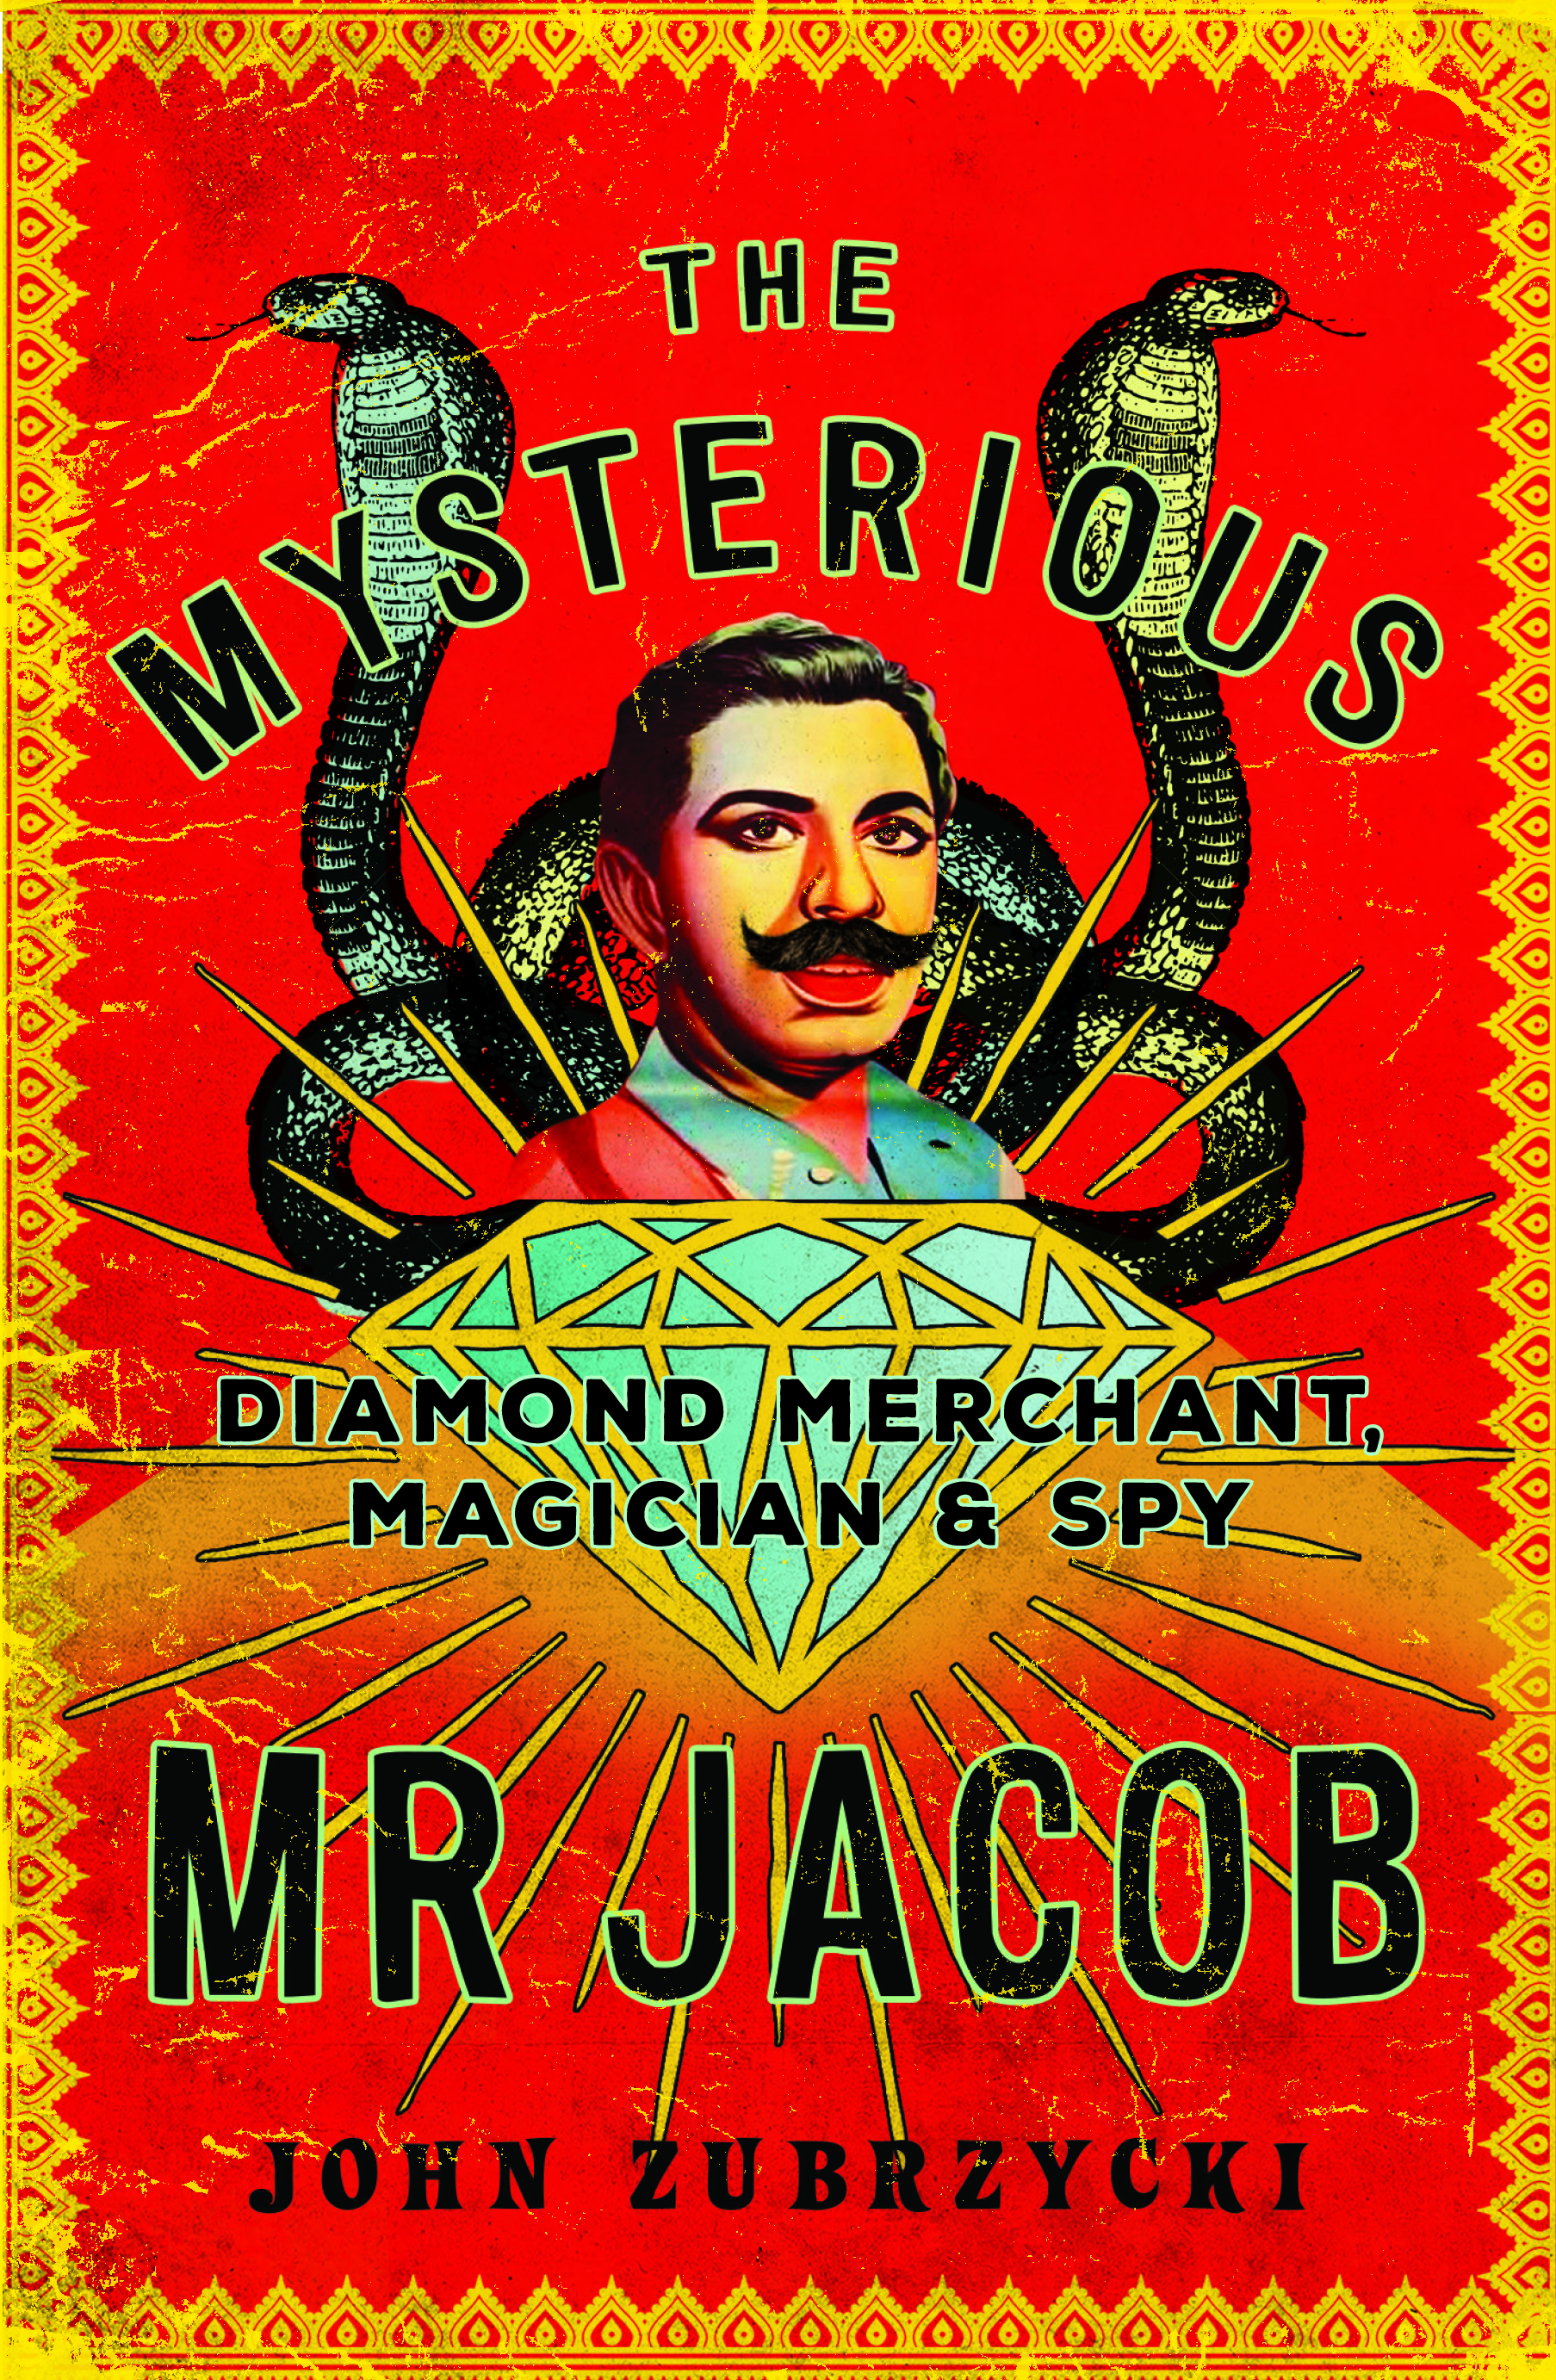 Launch of The Mysterious Mr Jacob